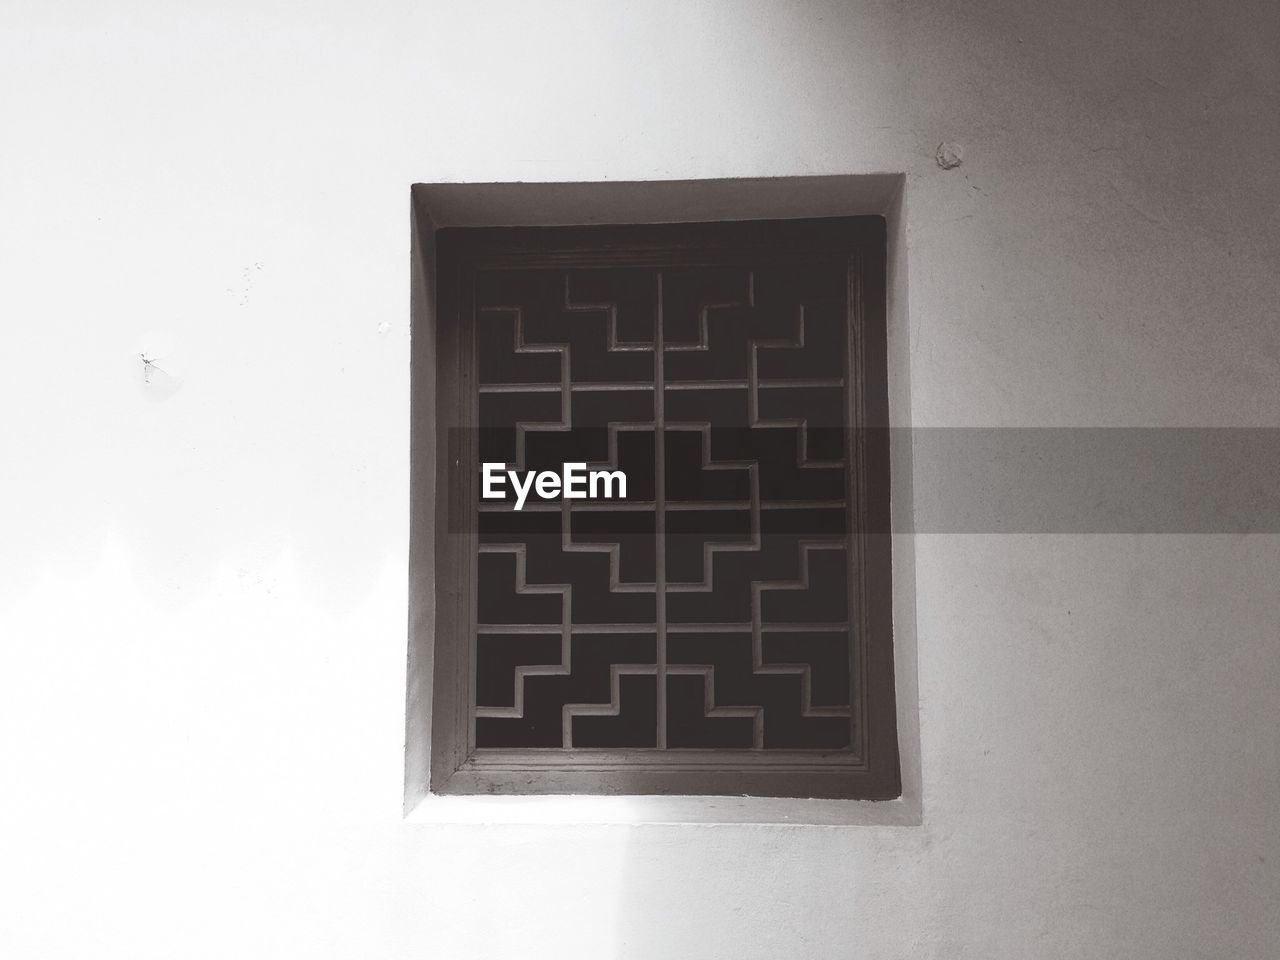 indoors, puzzle, maze, leisure games, no people, architecture, day, chess, close-up